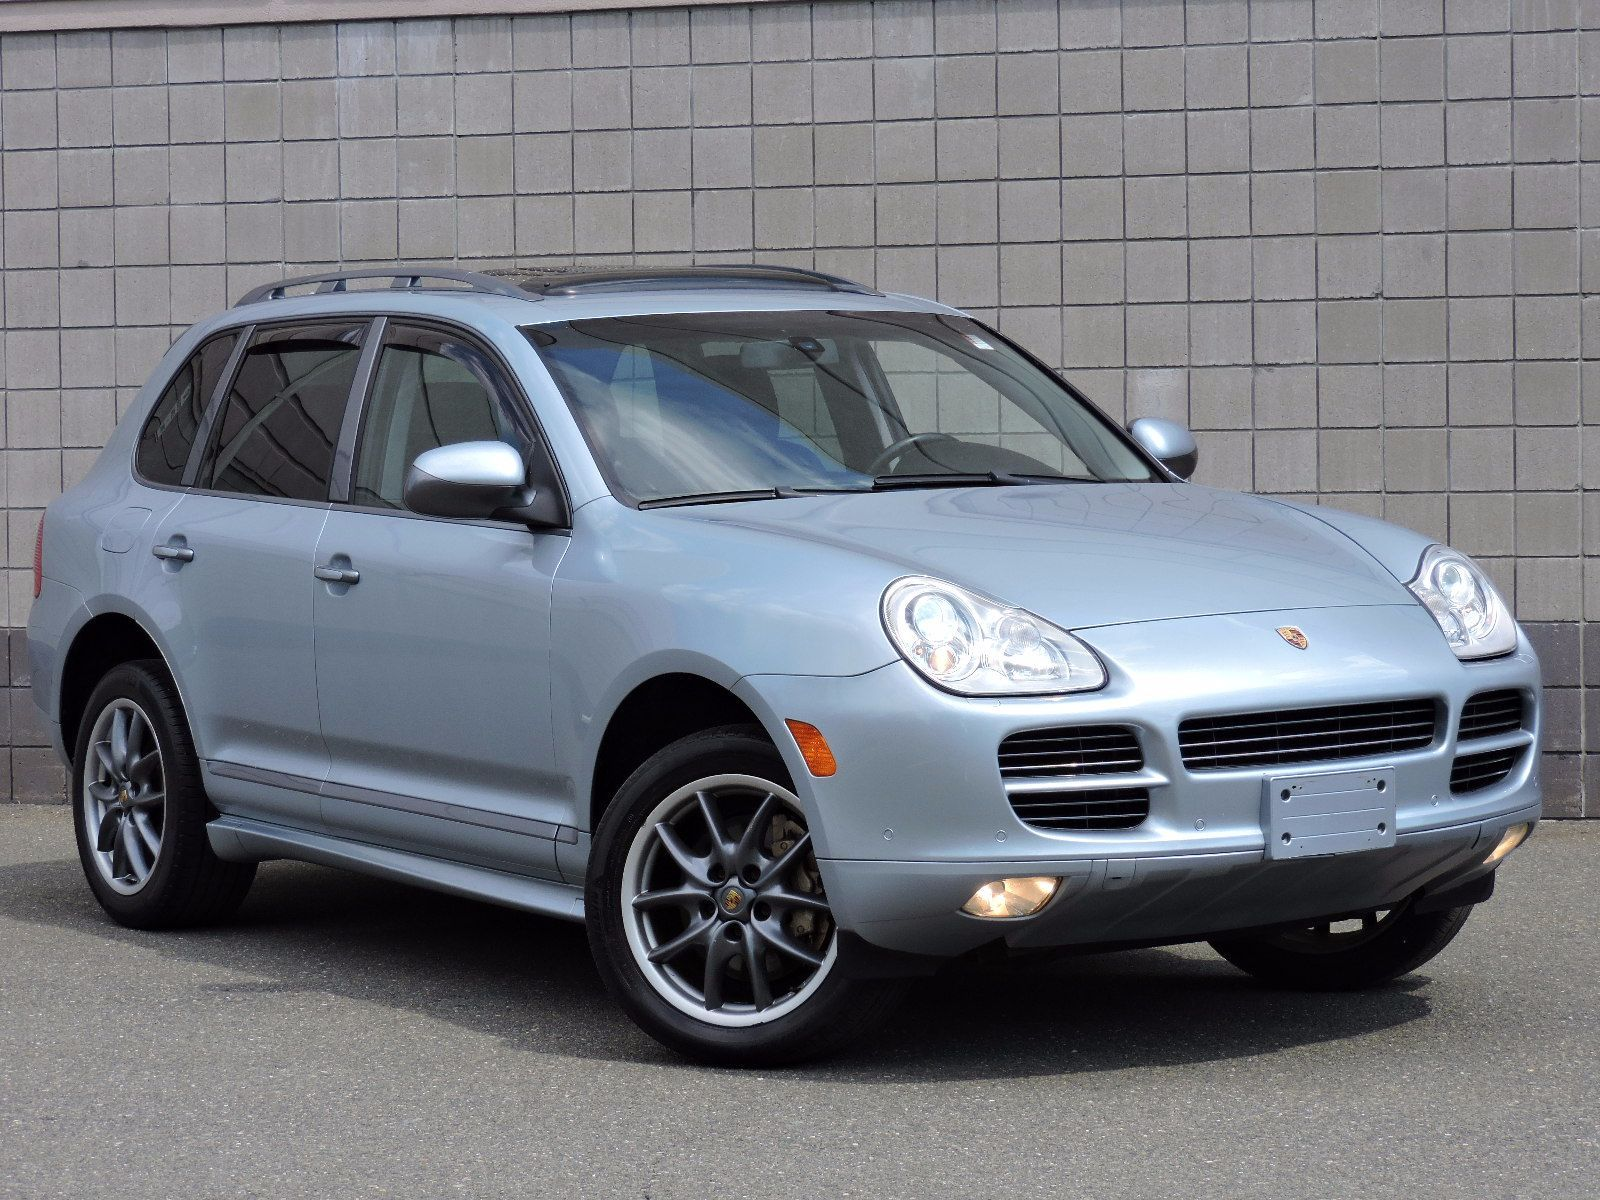 used 2006 porsche cayenne s titanium edition at auto house usa saugus. Black Bedroom Furniture Sets. Home Design Ideas